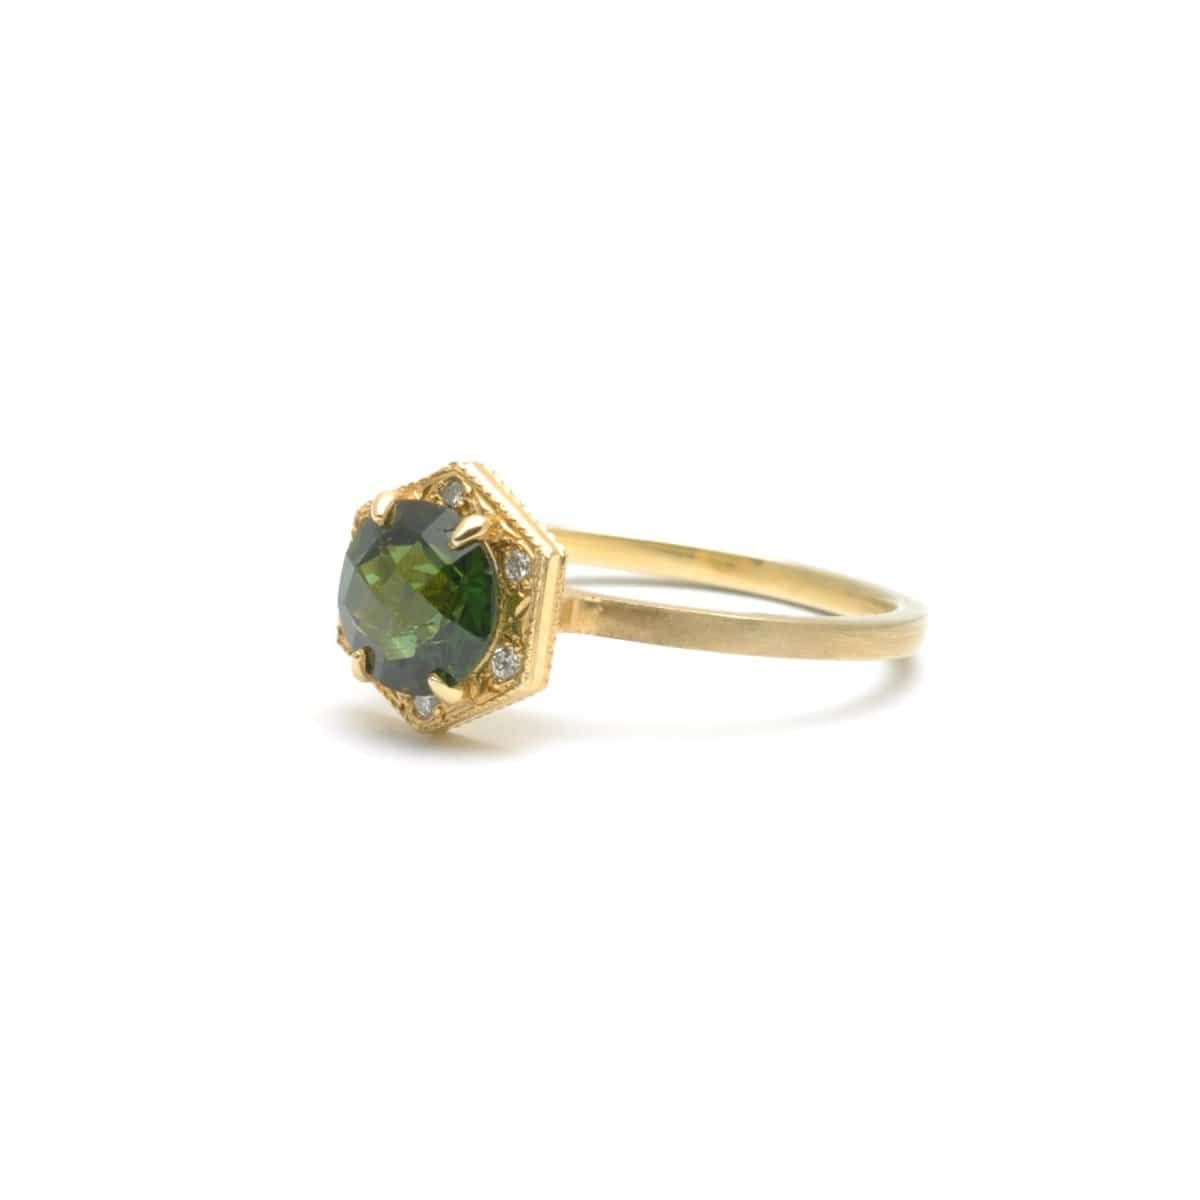 Dark Green Tourmaline with Diamonds Yellow Gold Ring